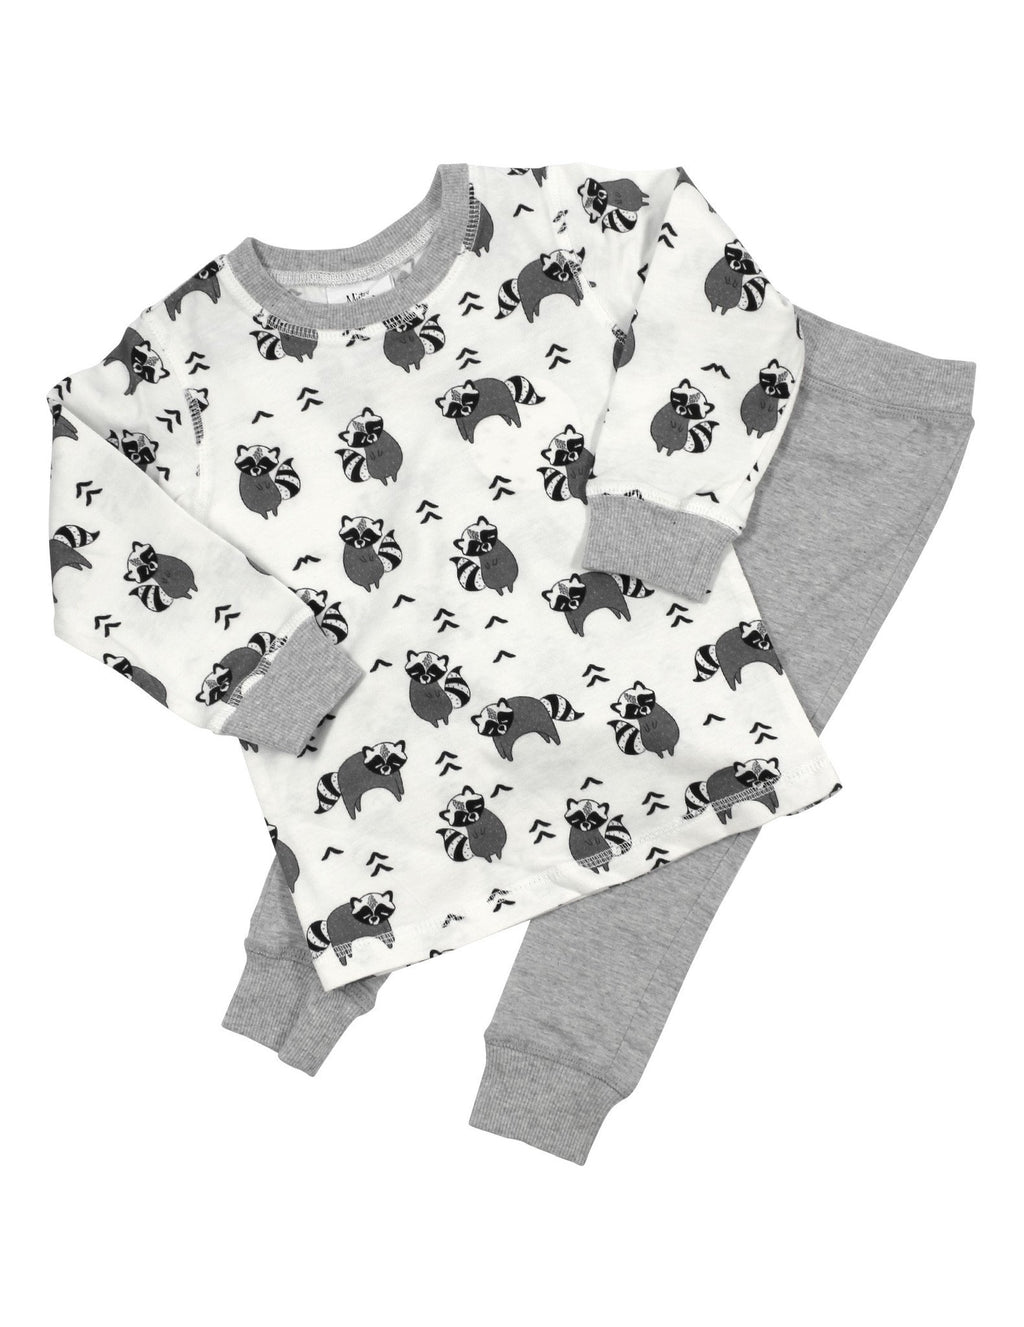 Mister Fly PJ's Raccoon